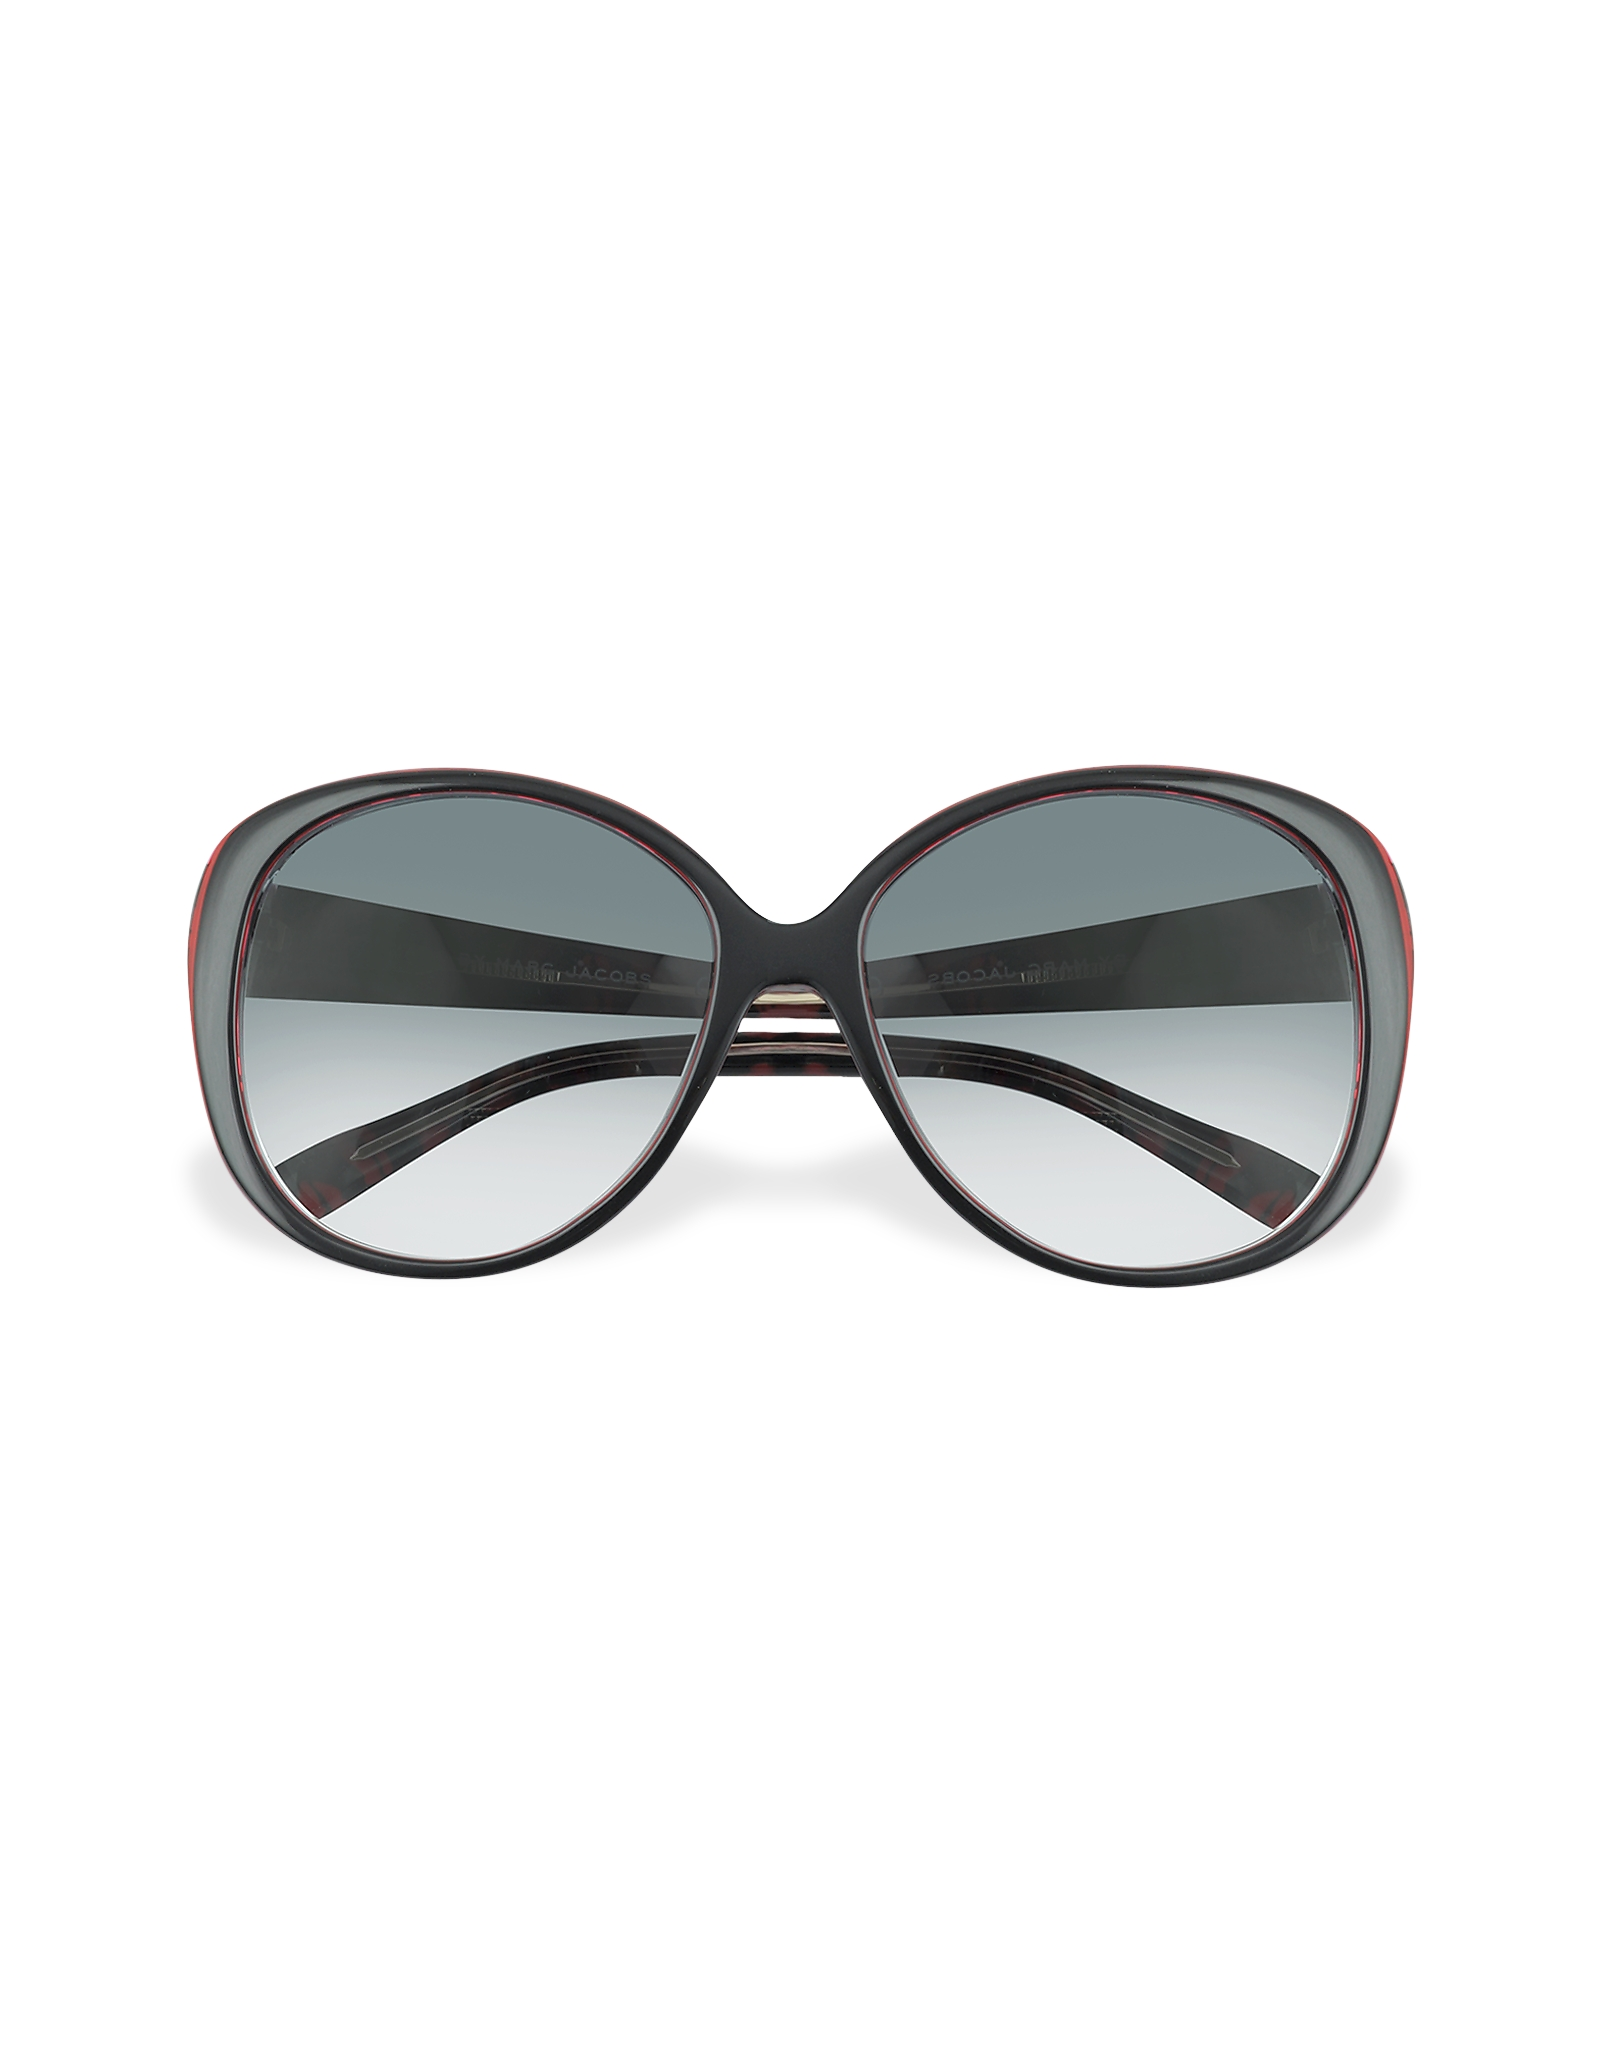 Marc By Marc Jacobs Round Frame Glasses : Marc by marc jacobs Signature Acetate Round Frame ...